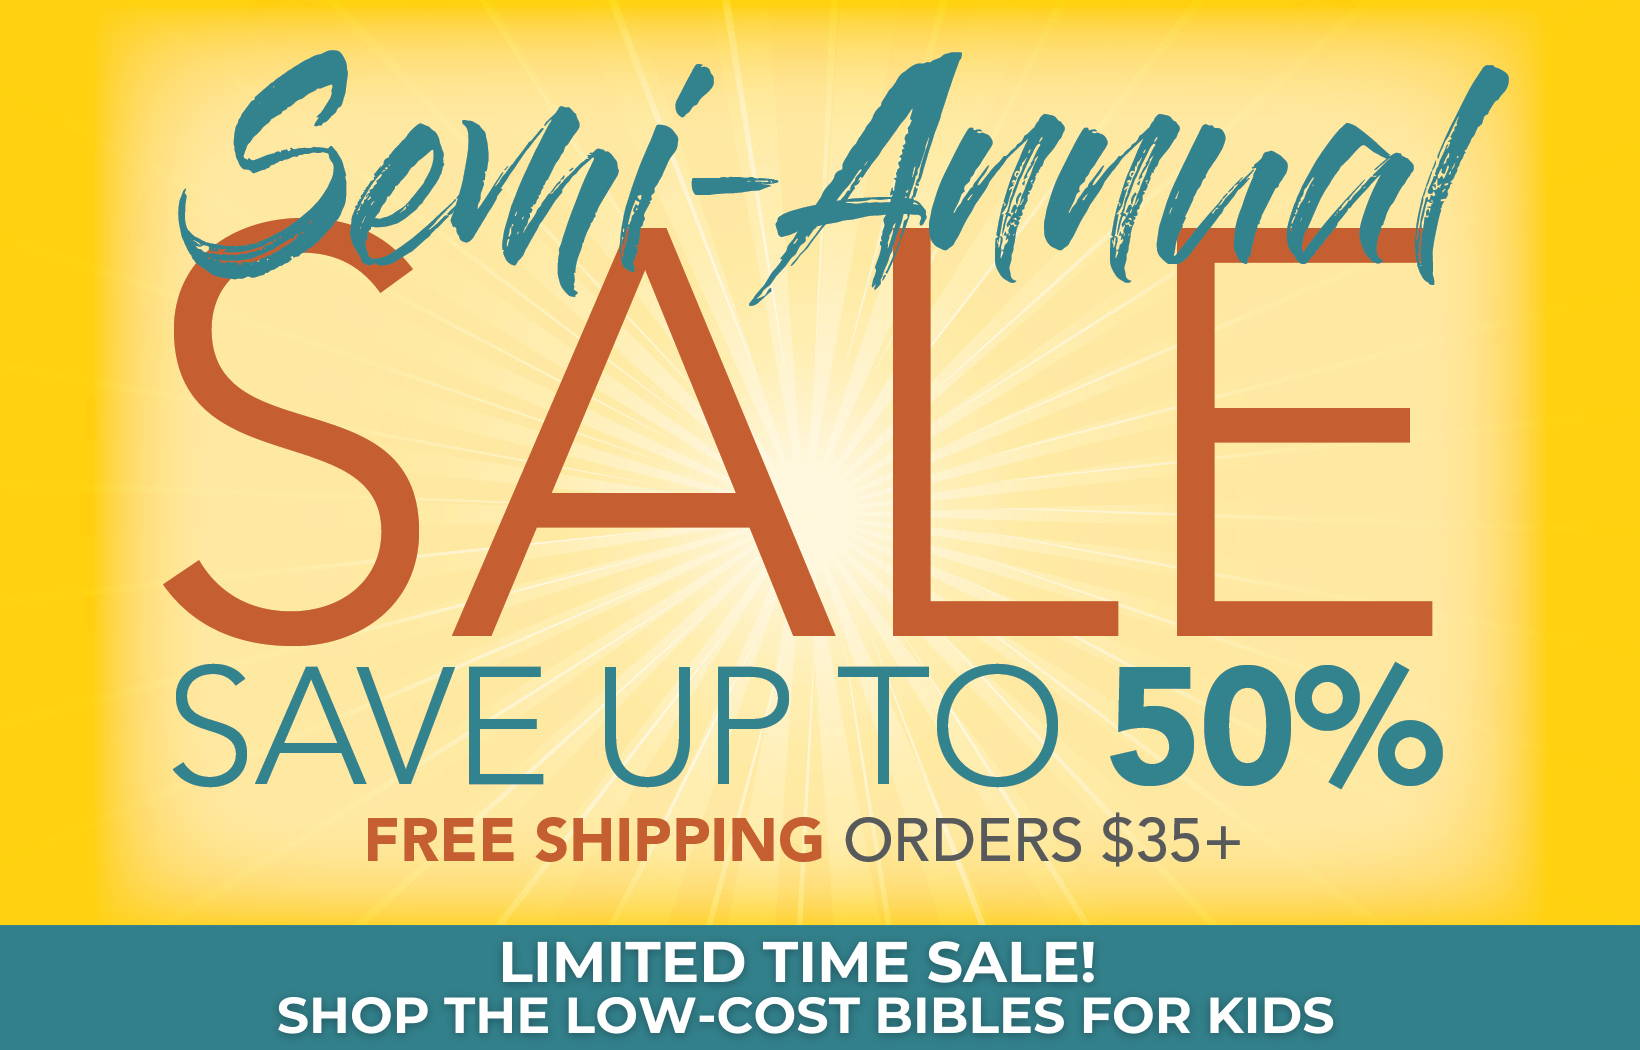 3-Days Left! Semi-Annual Sale - Save up to 50%